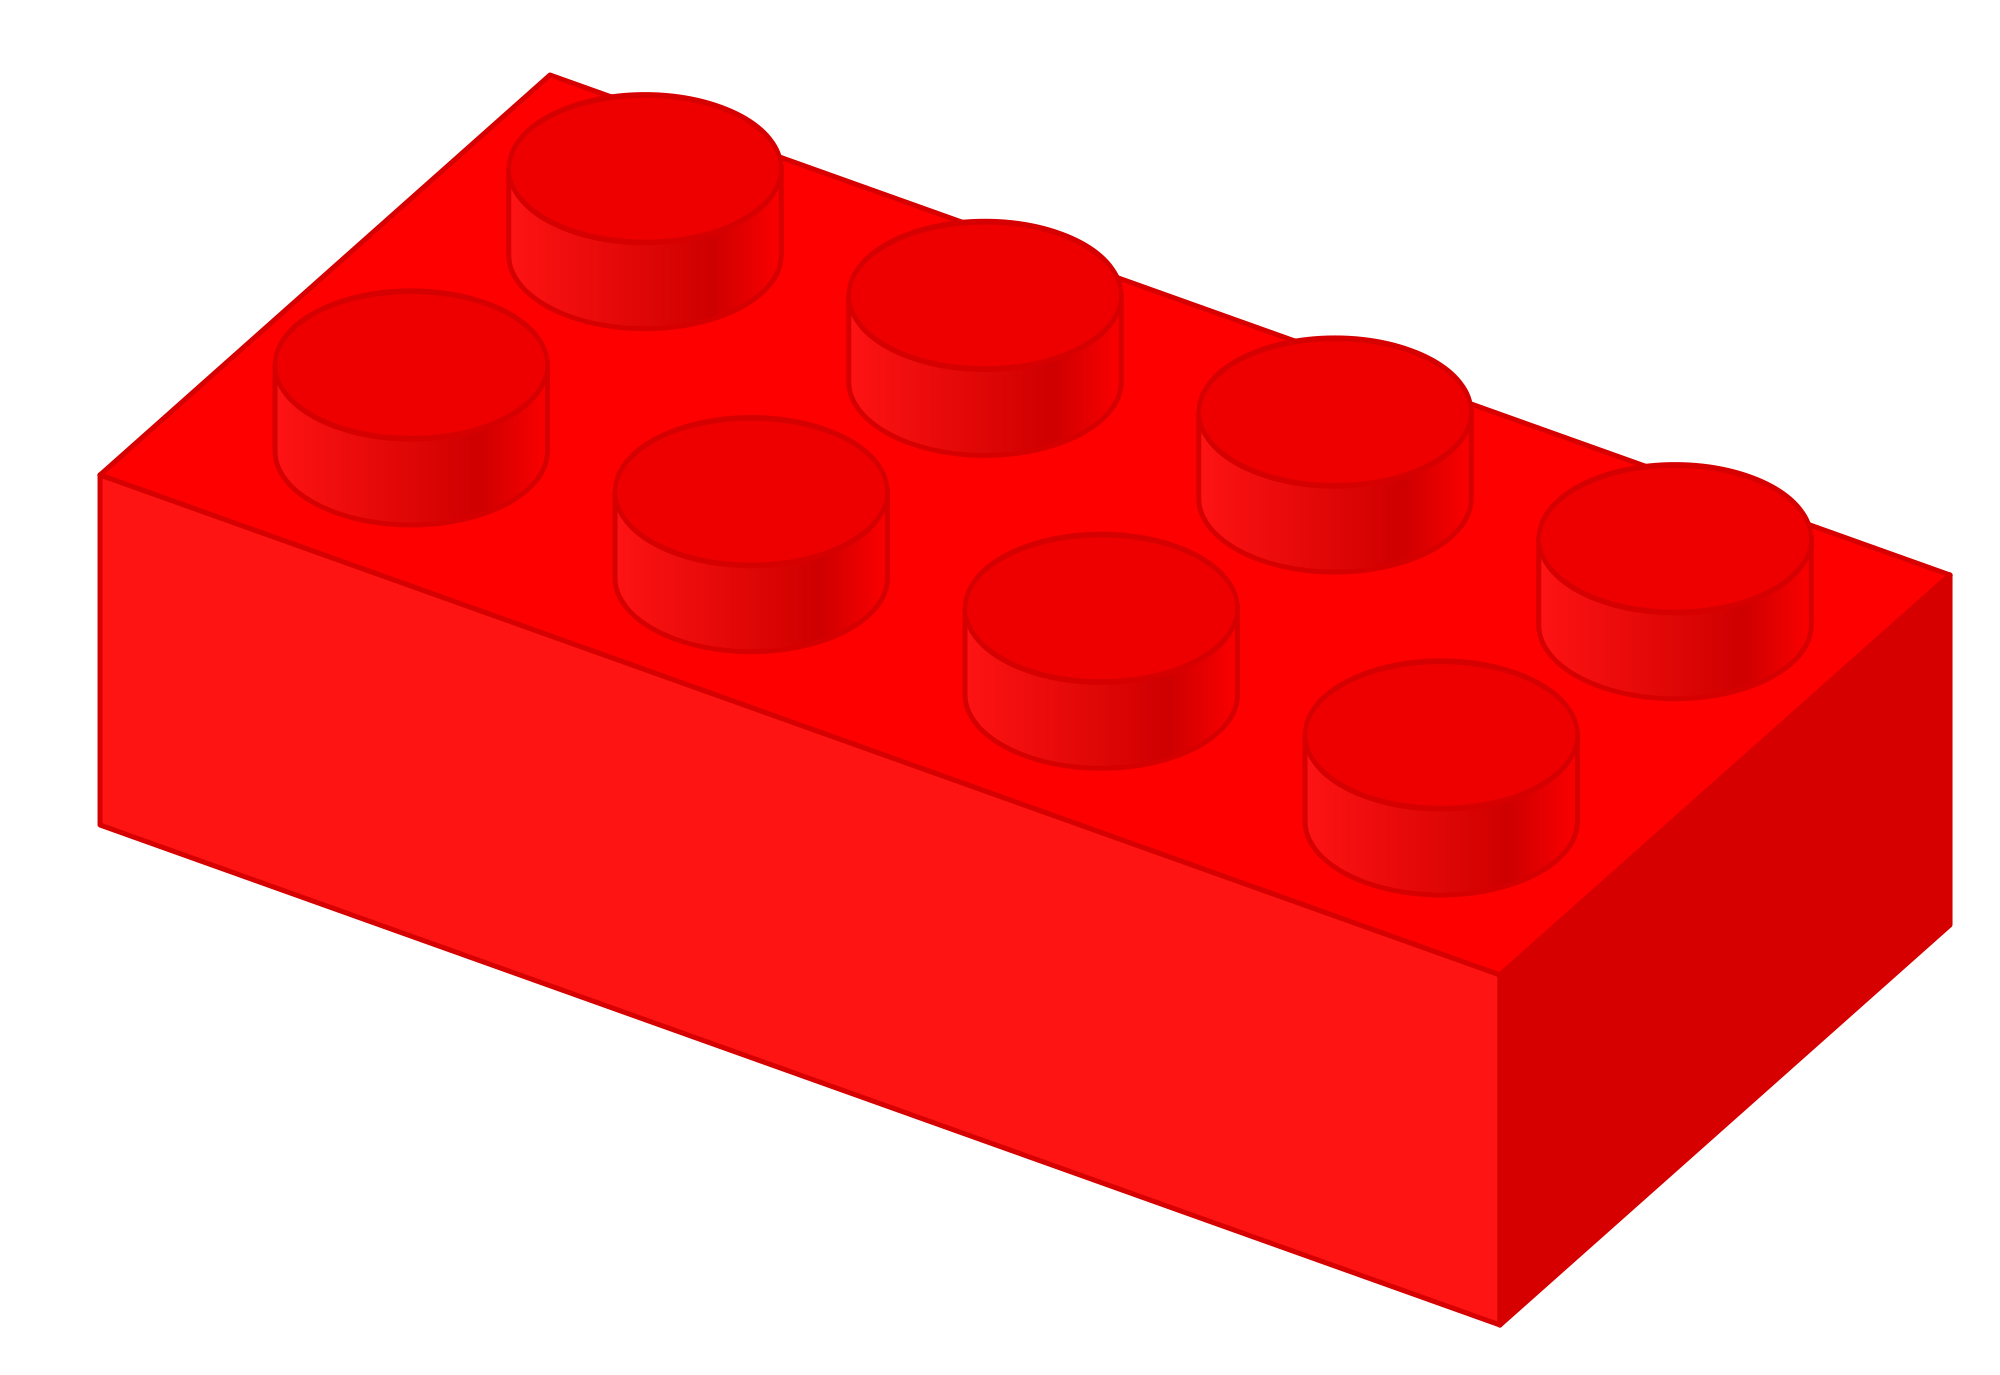 Best Free Red Lego Blocks Png Image image #46626